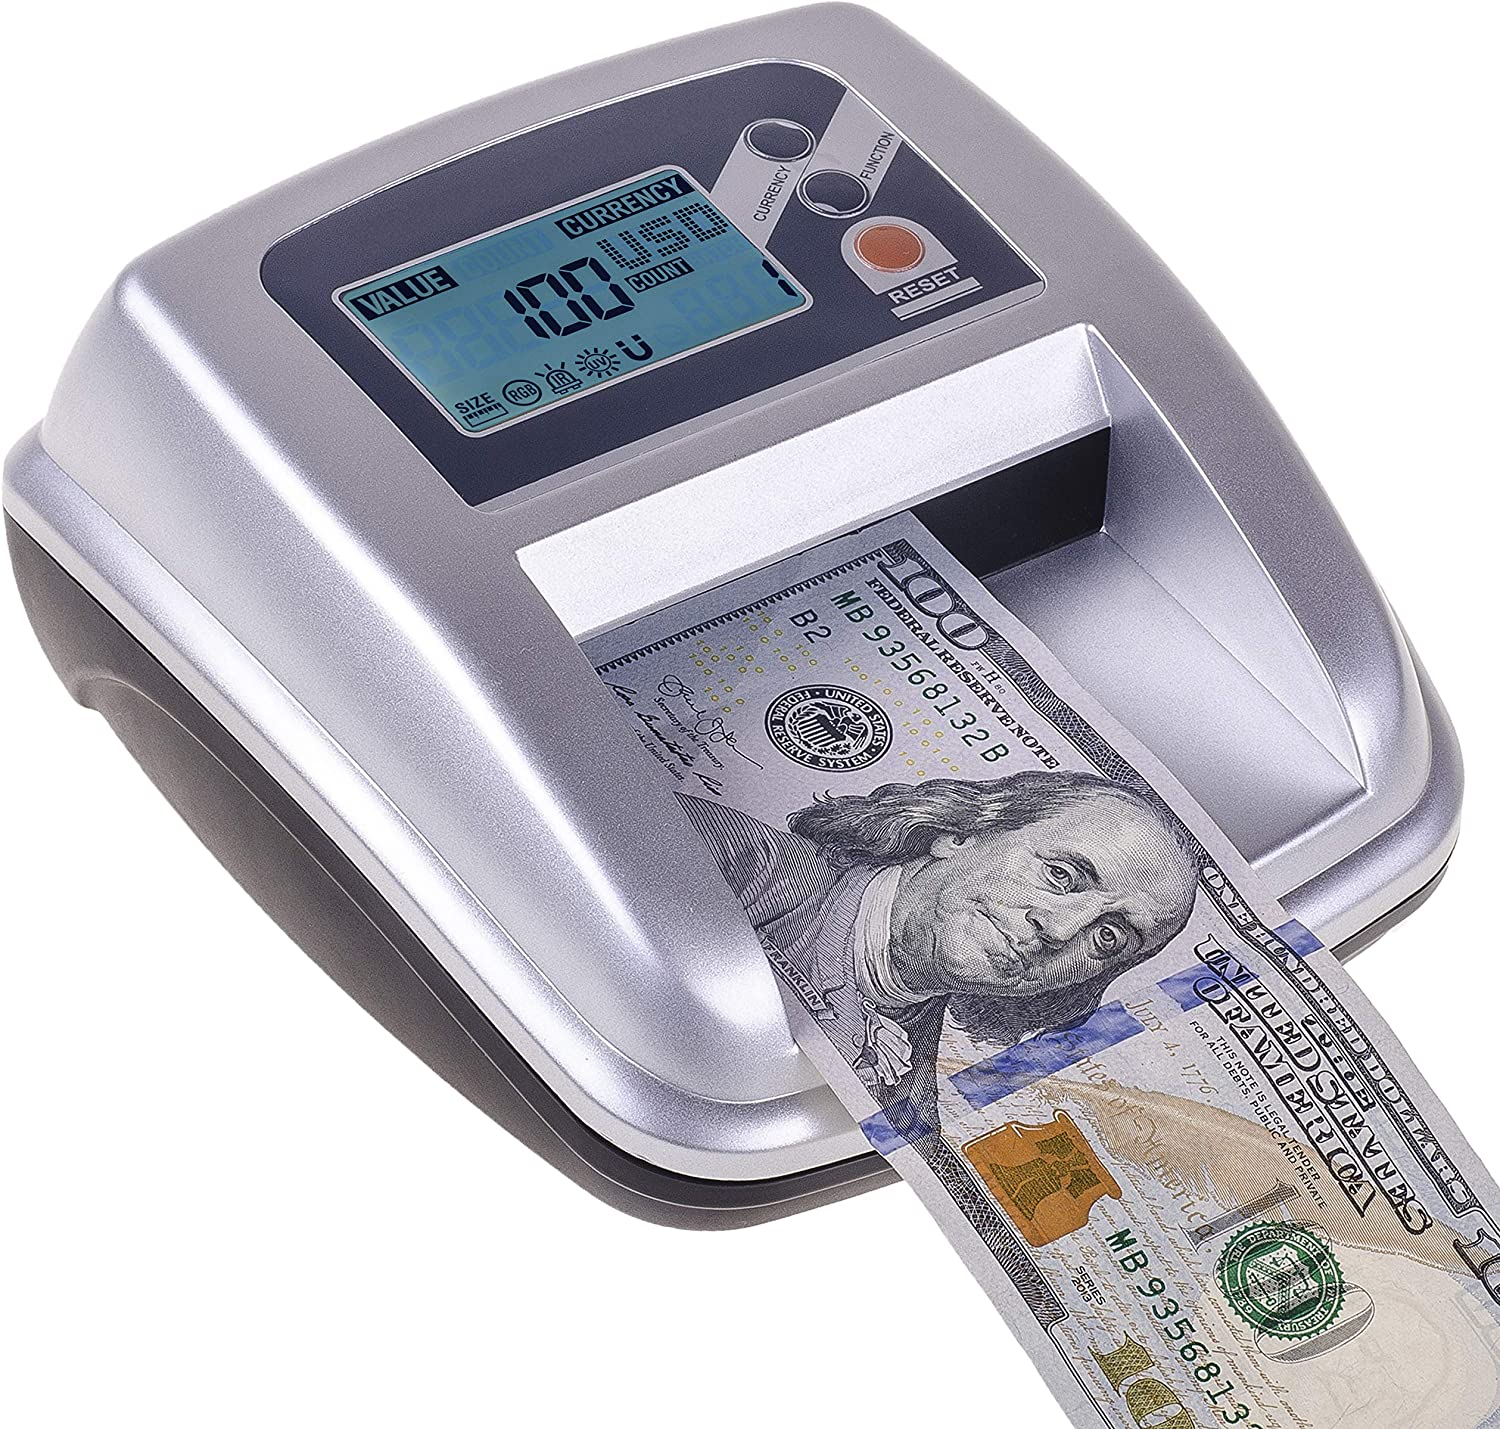 Portable 4 Way Insertion Counterfeit Bill Detector with Battery Eko system